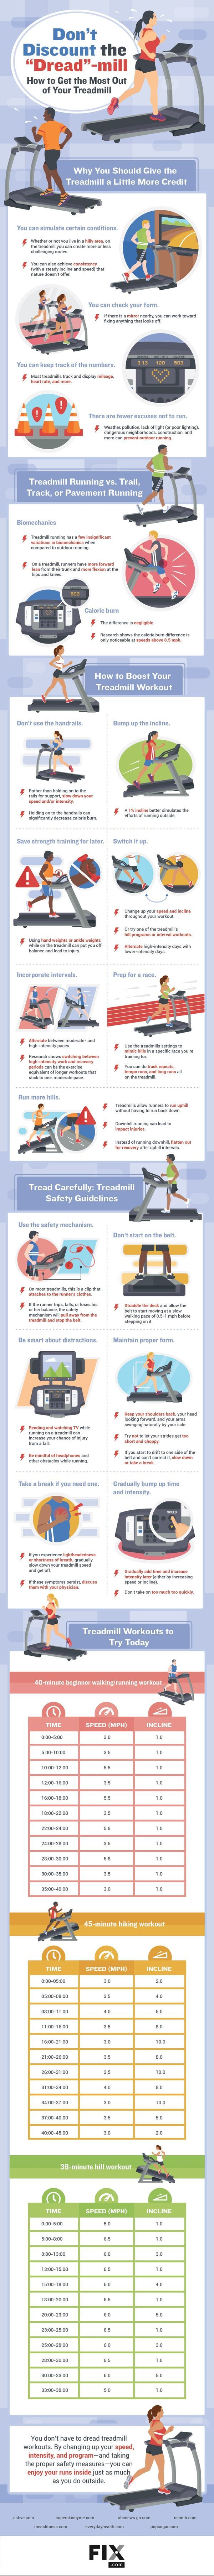 Get the most out of your treadmill workout with this guide full of tips!